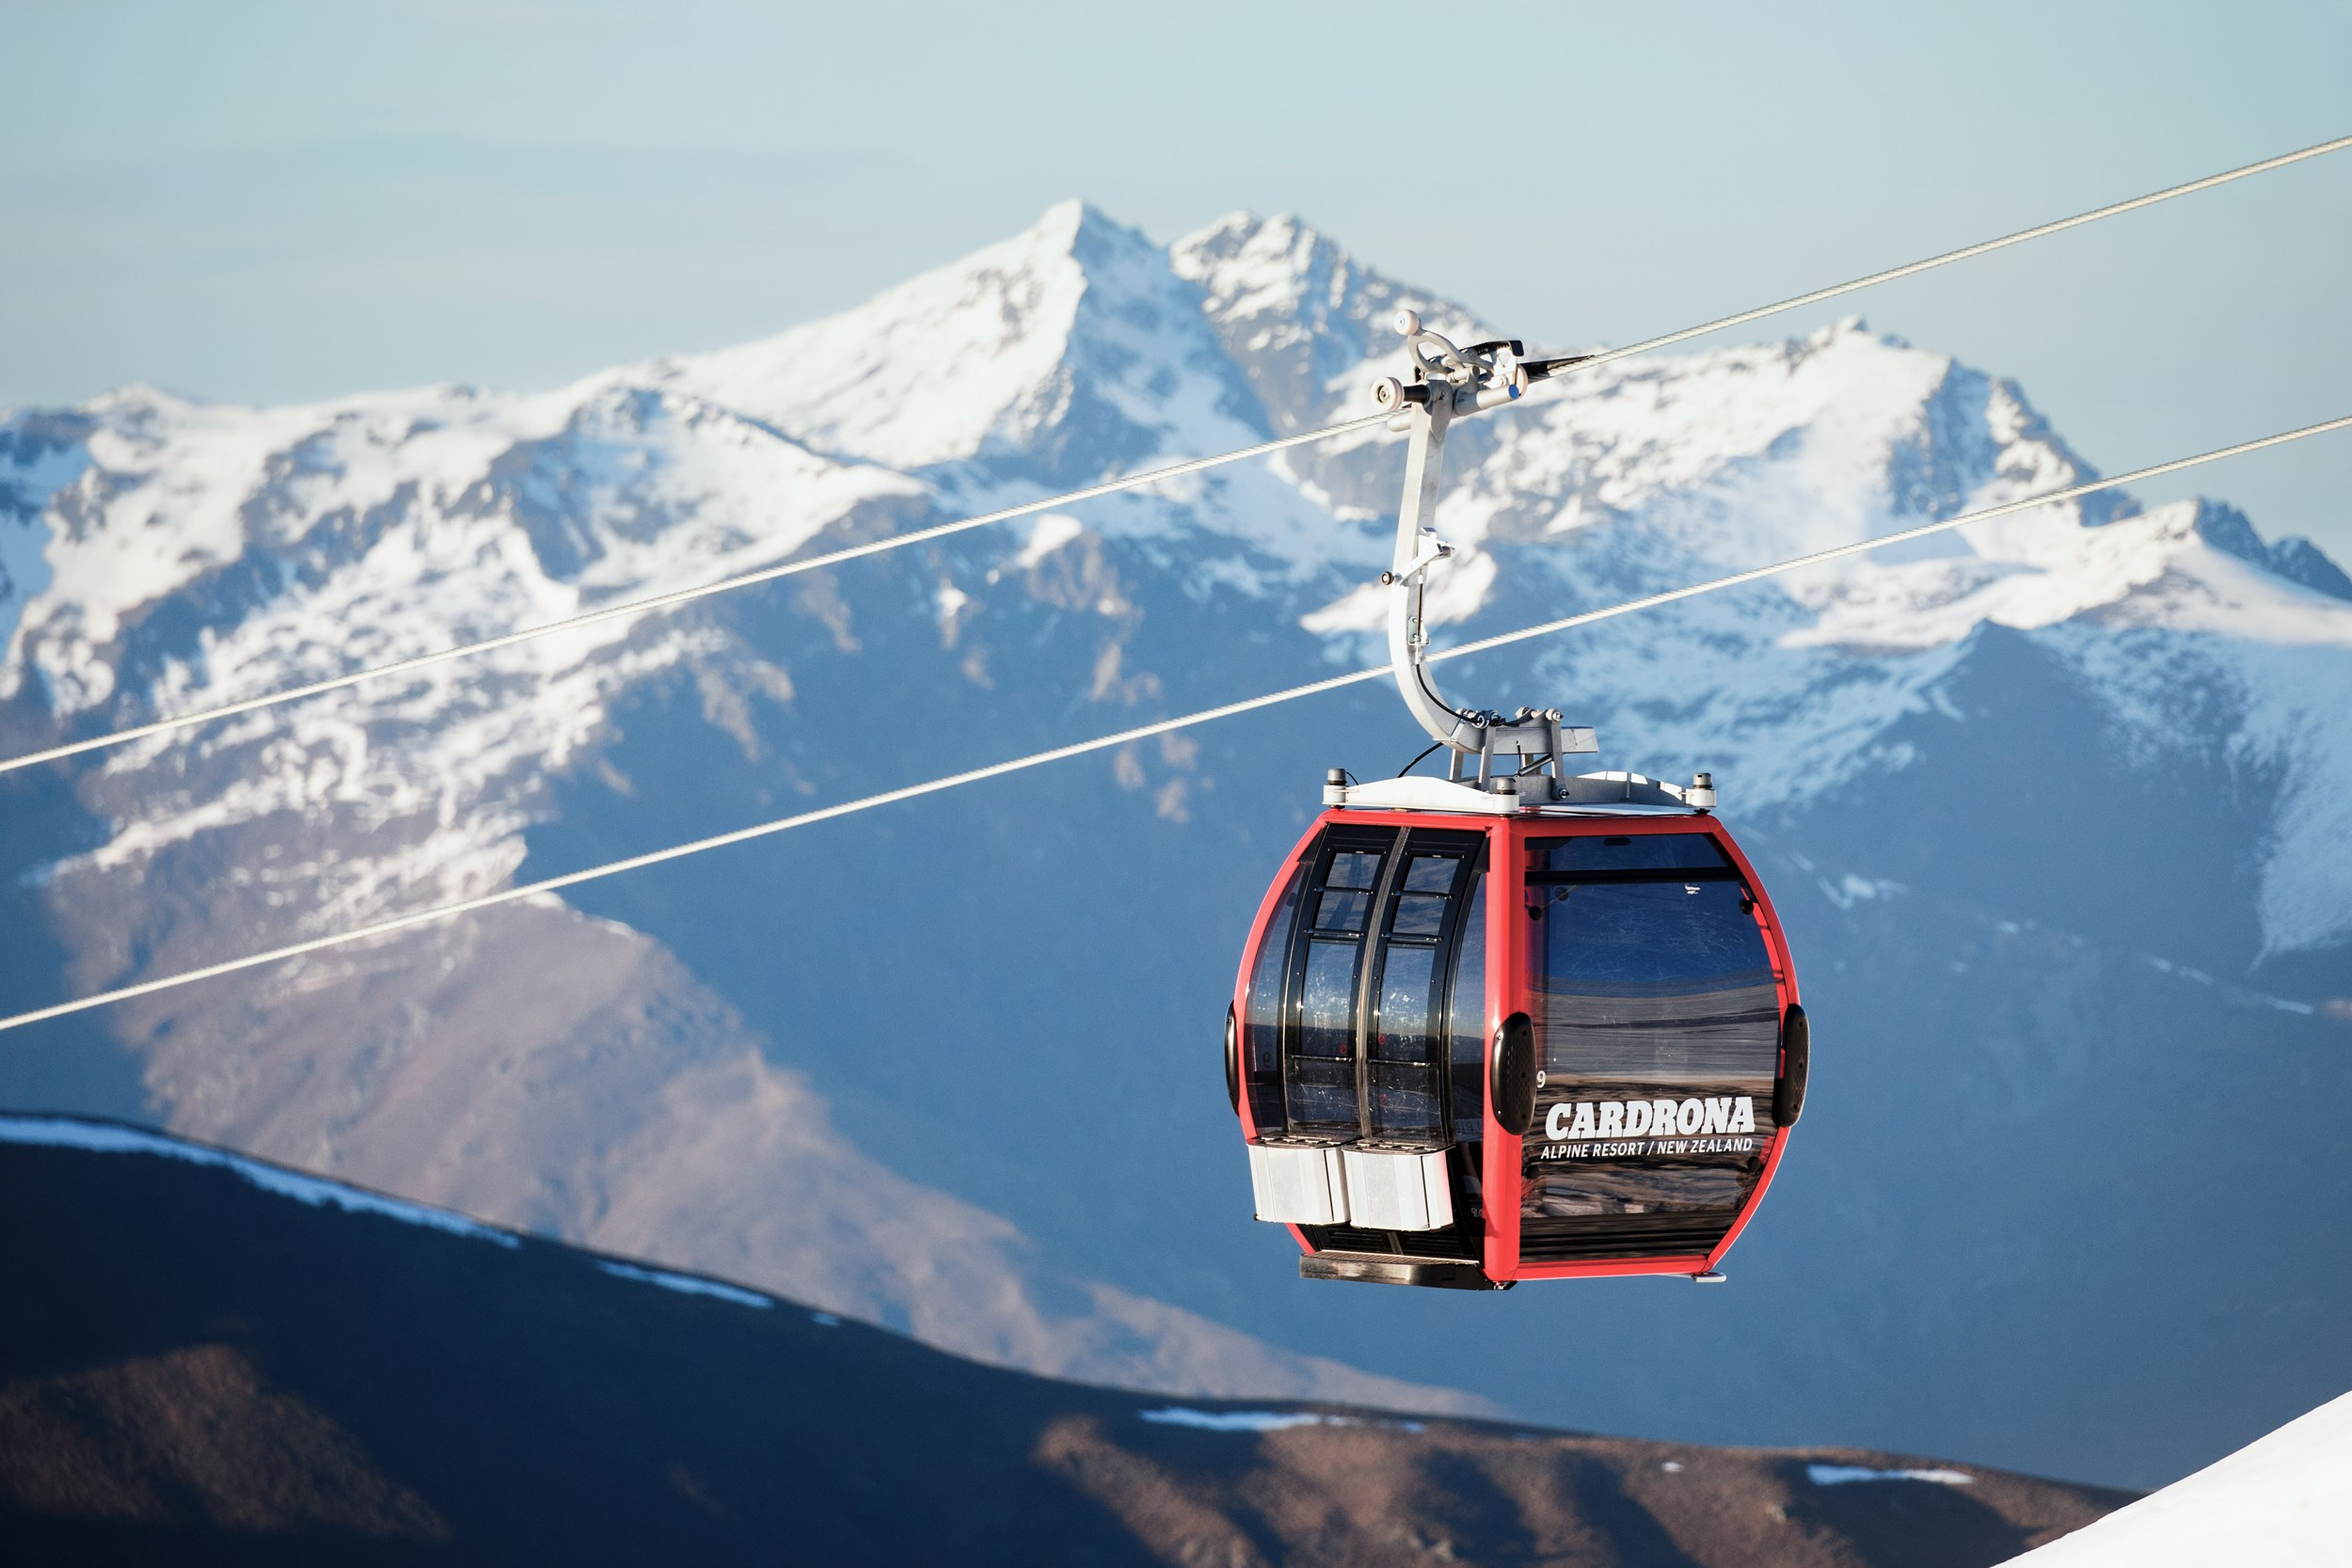 Cardrona - Gondola - Chondola - Skiing in New Zealand - learn to ski - learn to snowboard